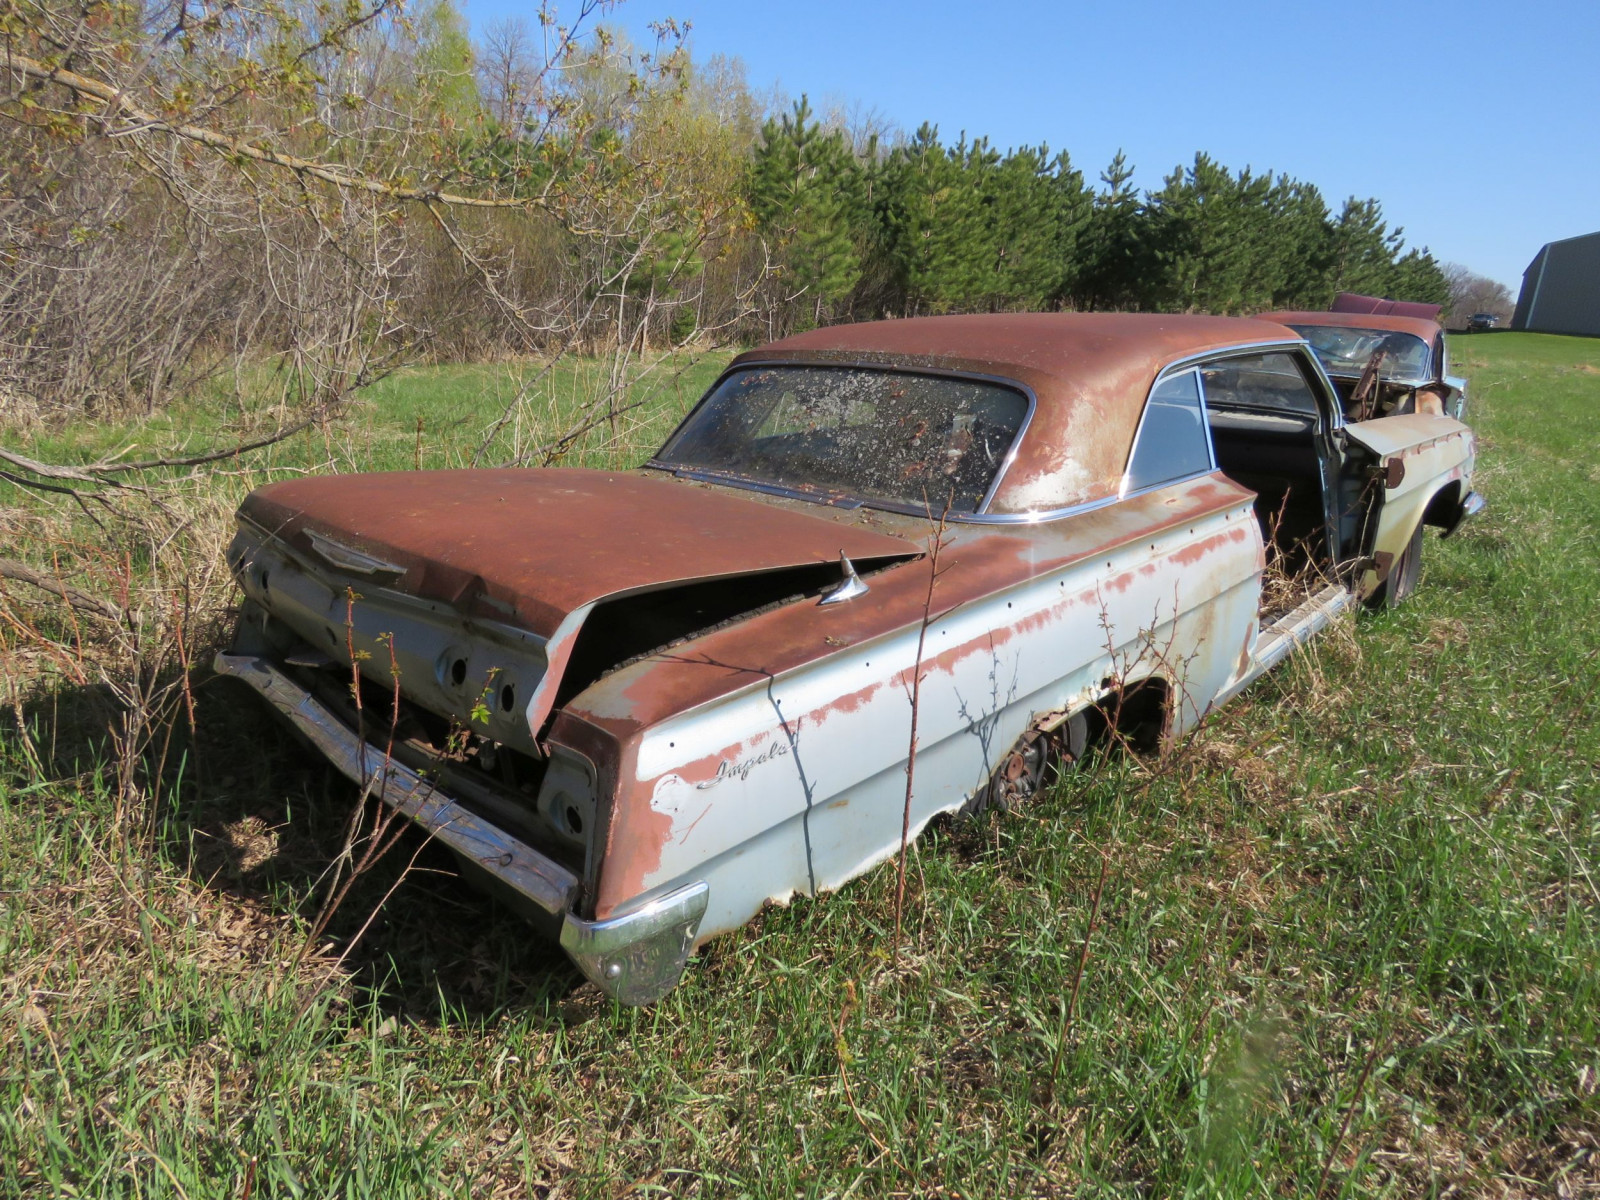 1962 Chevrolet 2dr HT rough Shell only - Image 3